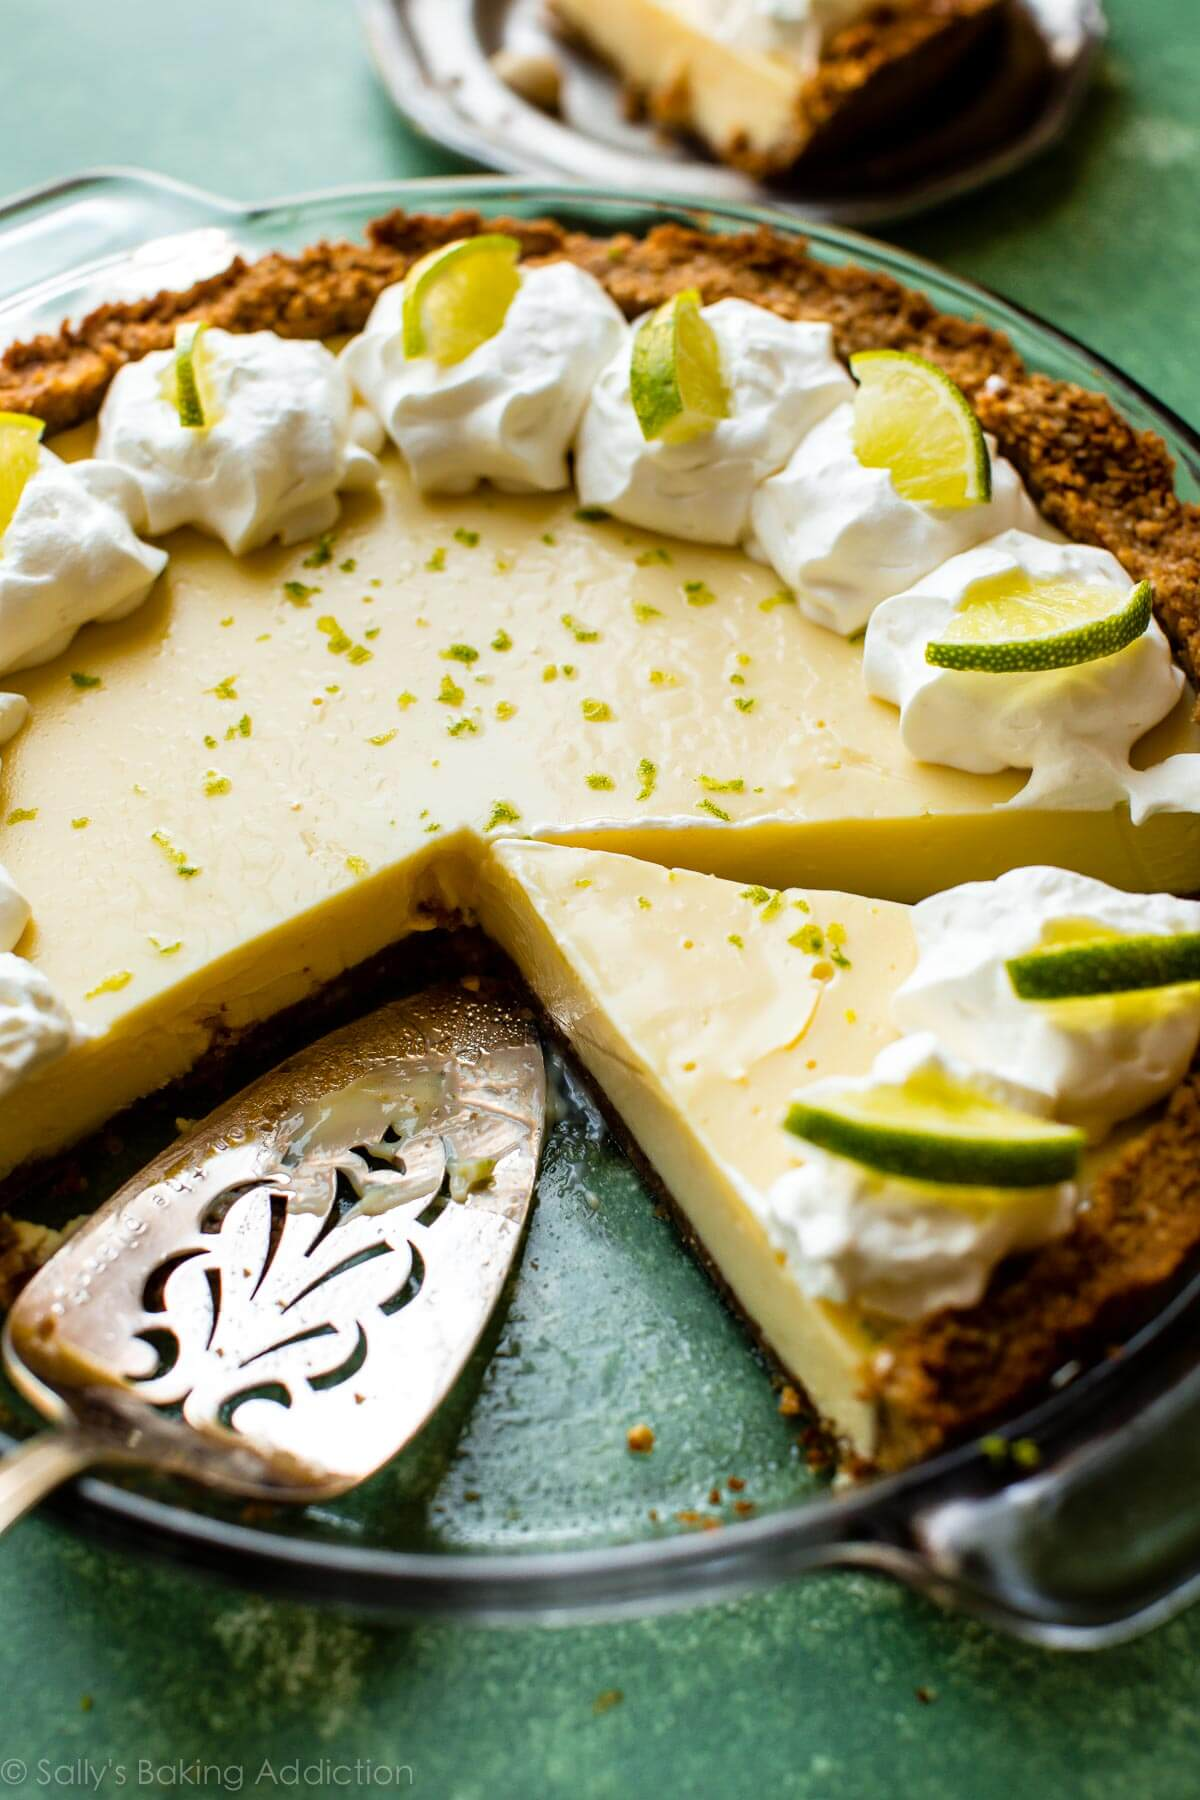 Key Lime Pie. With macadamia nut crust